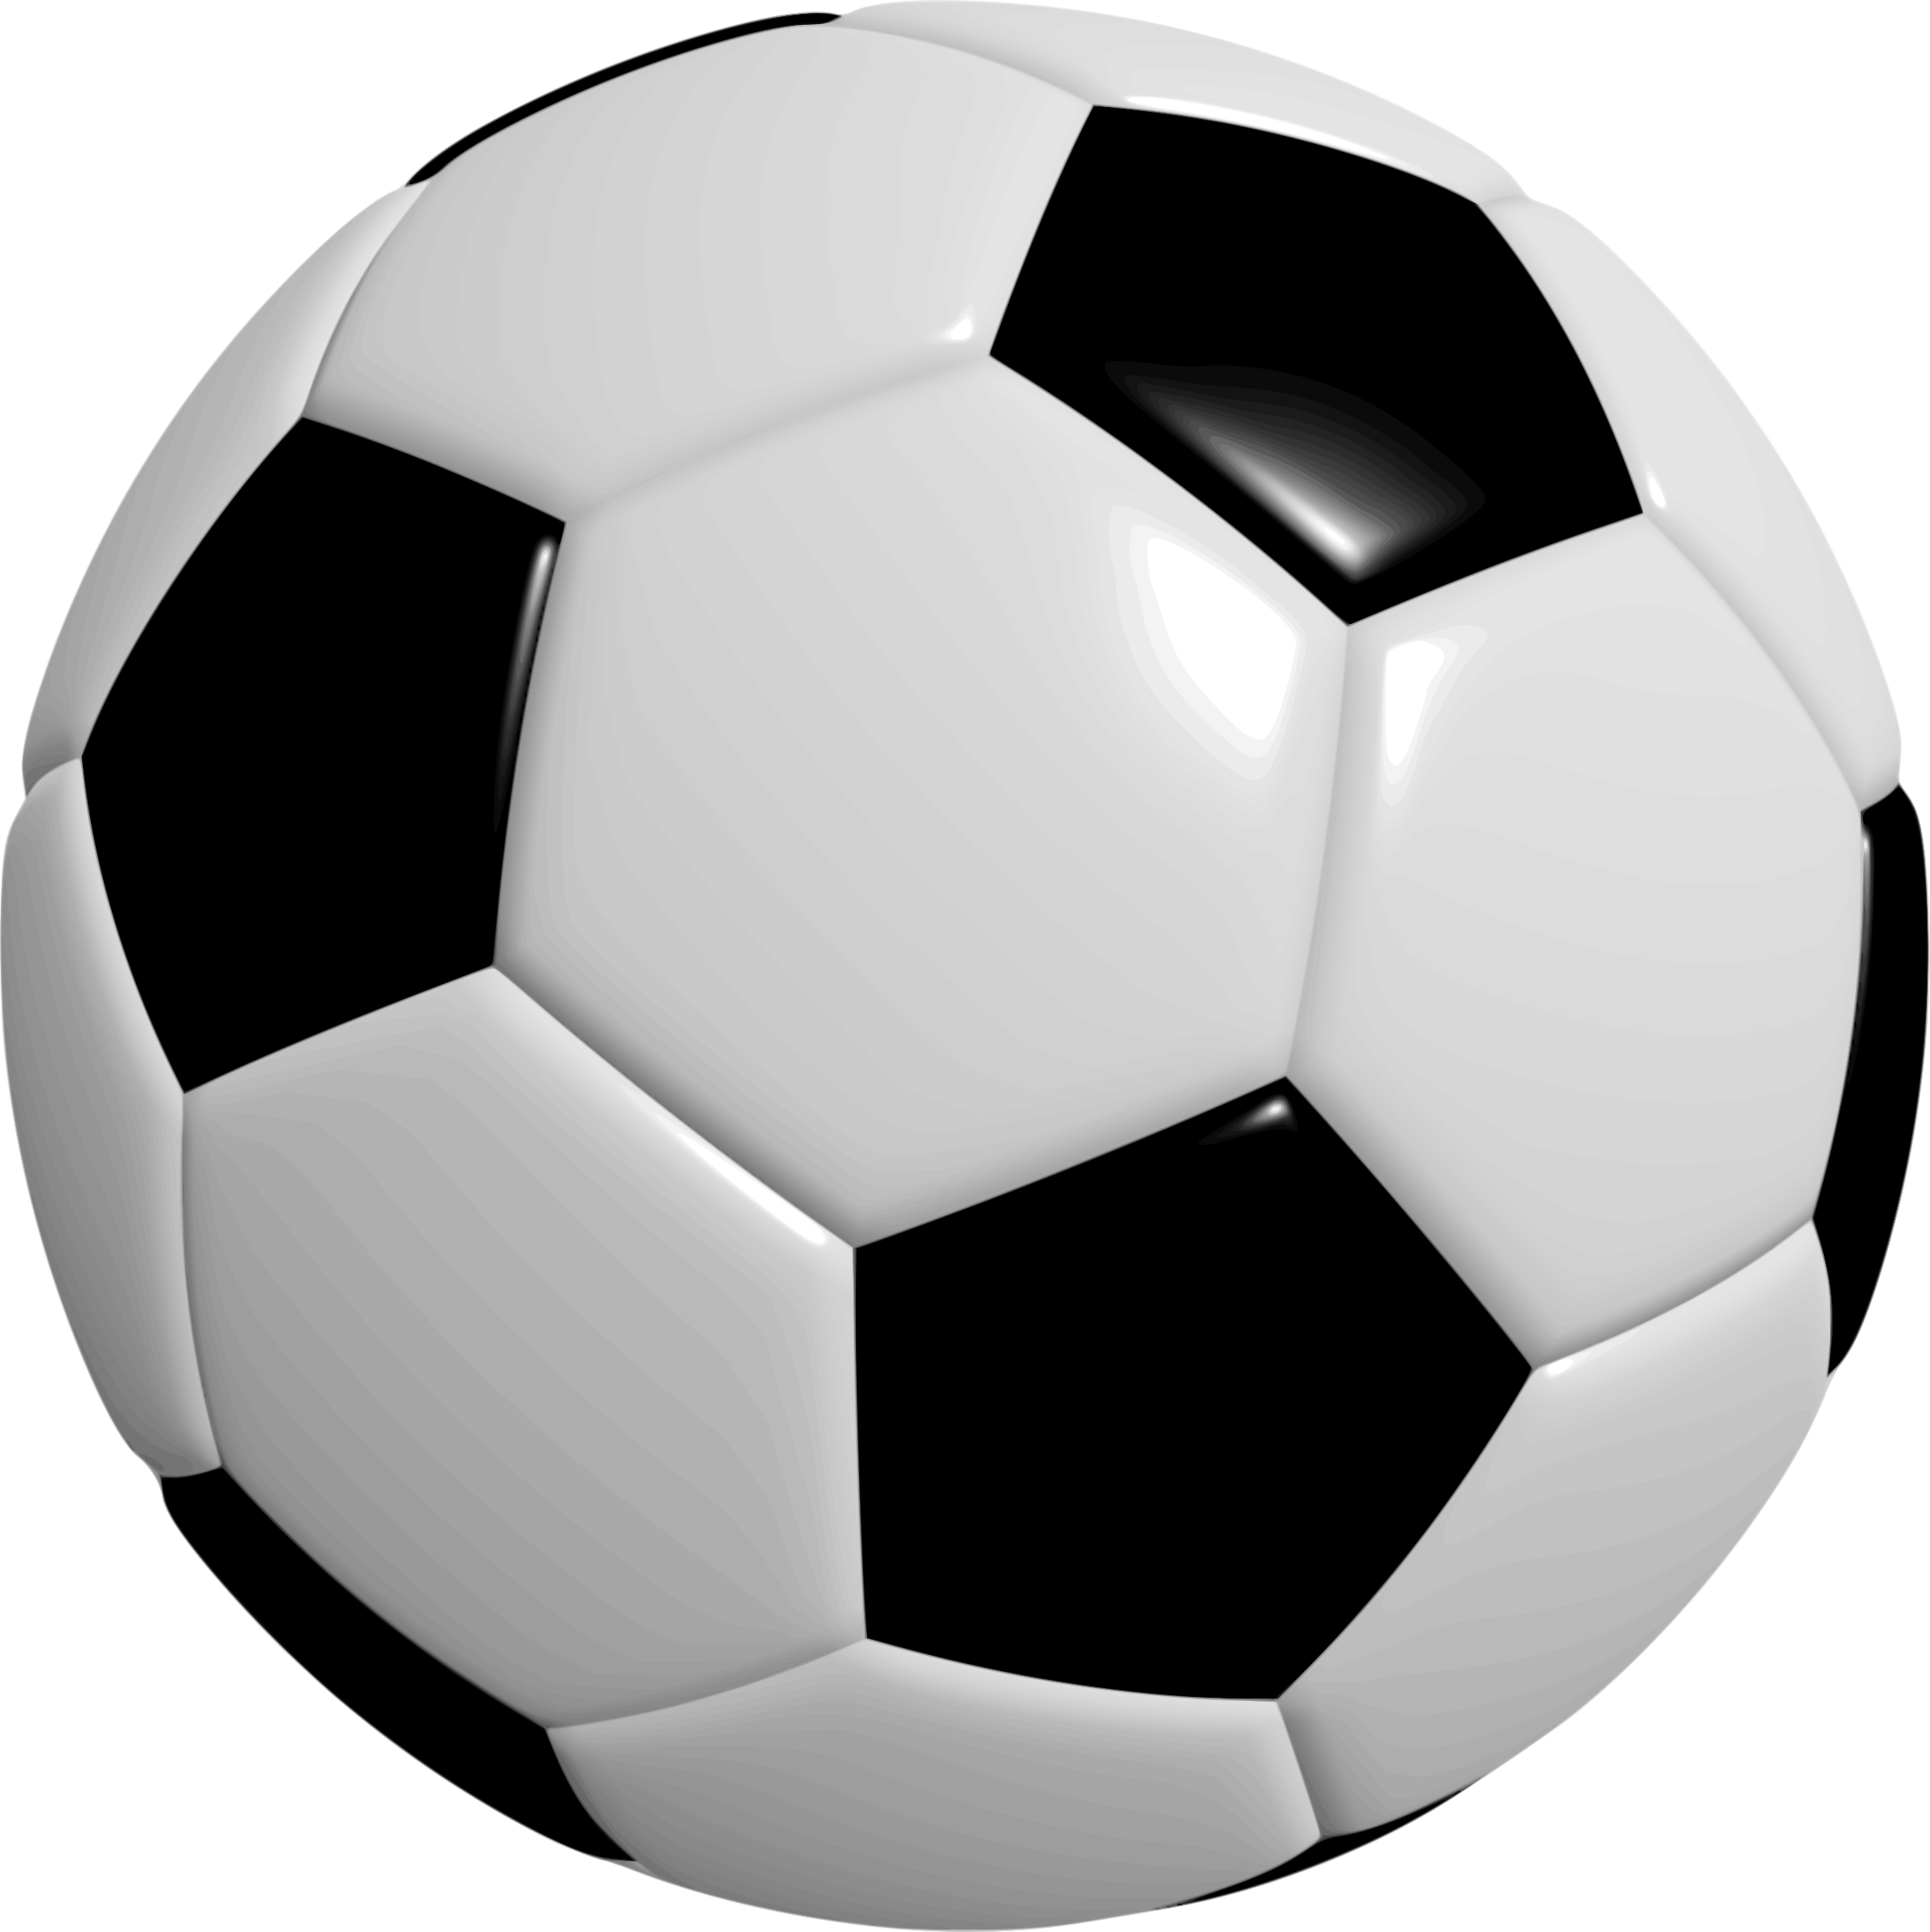 soccer ball transparent png pictures free icons and png disco ball clipart black and white disco ball clip art image